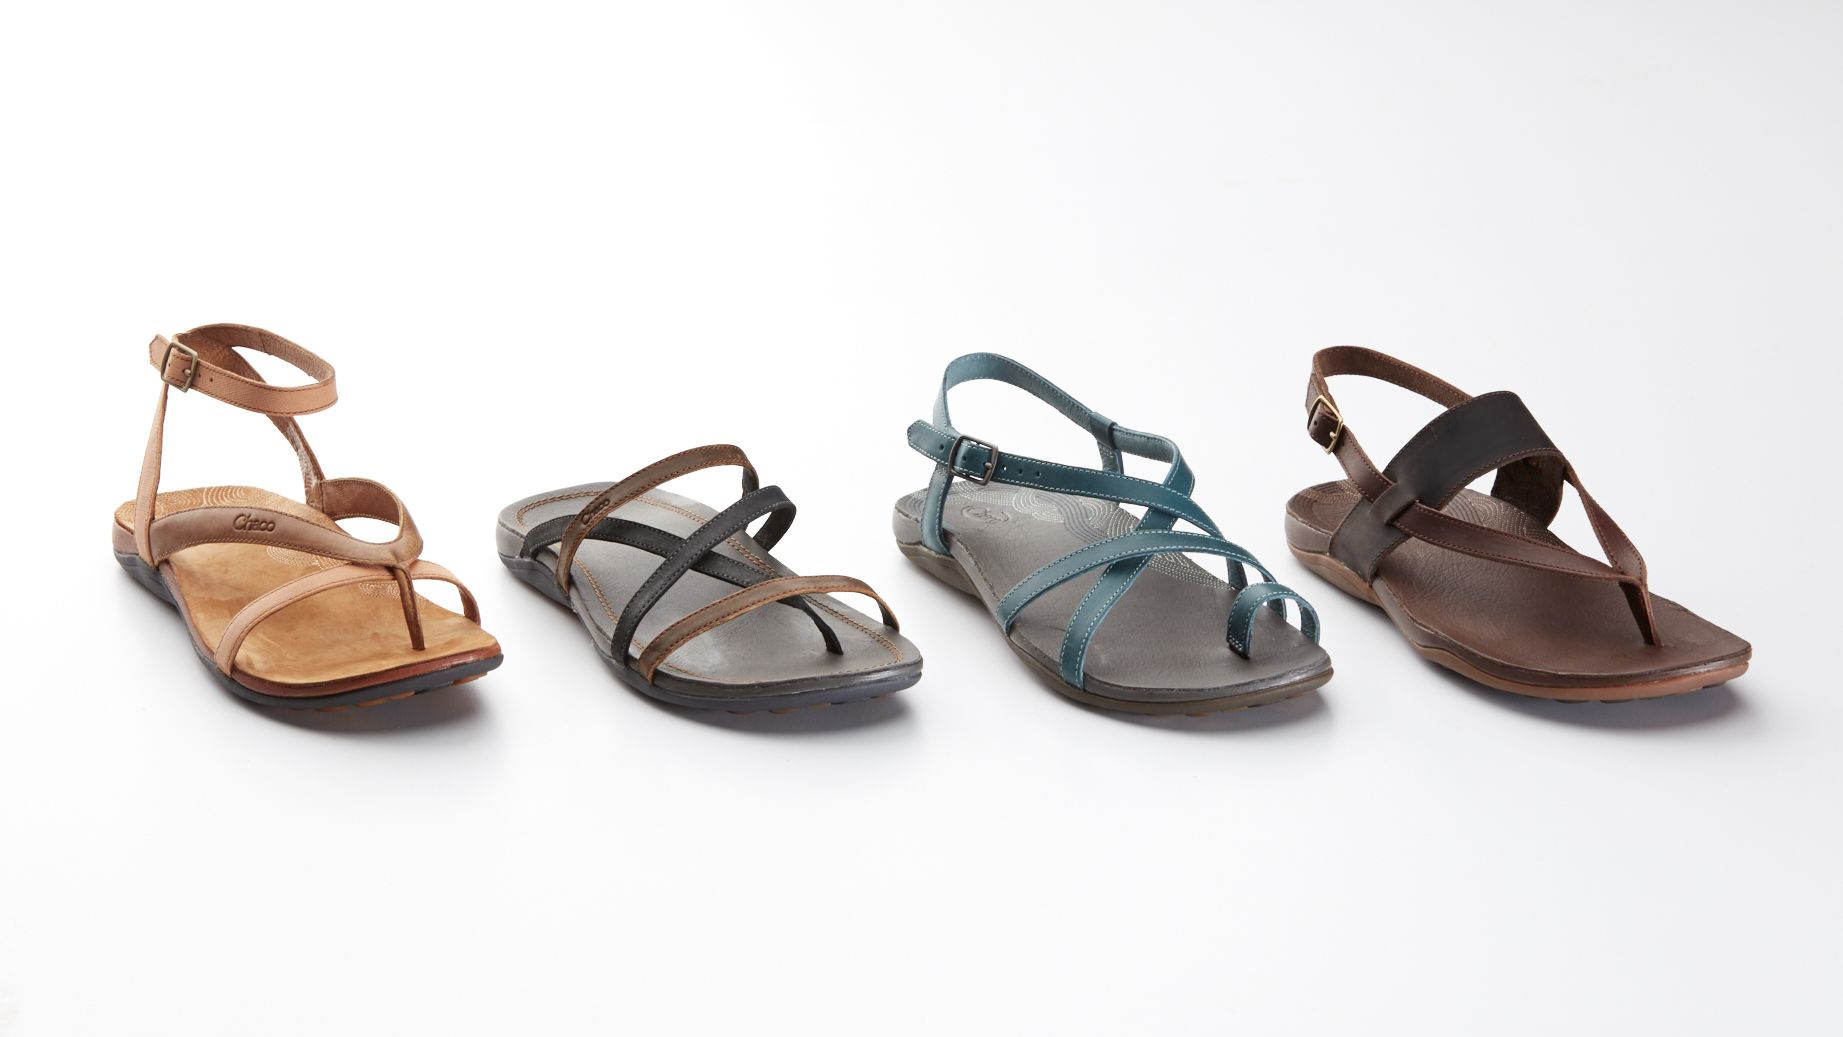 2a16a4bc7535 Spring 2017 Women s Leather Sandals - Chaco